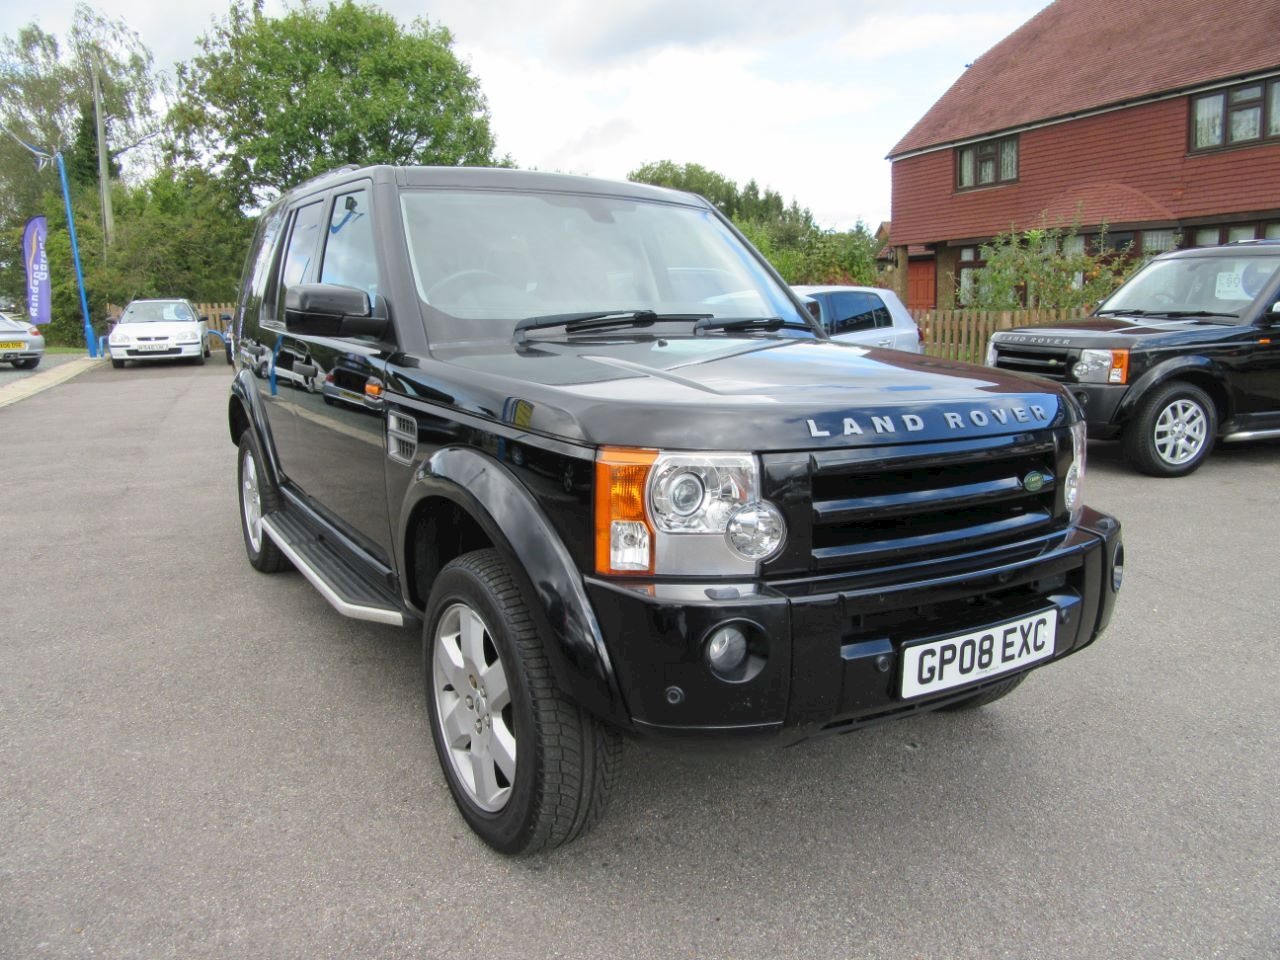 Used land rover discovery tdv6 hse e4 east sussex for Land rover garage